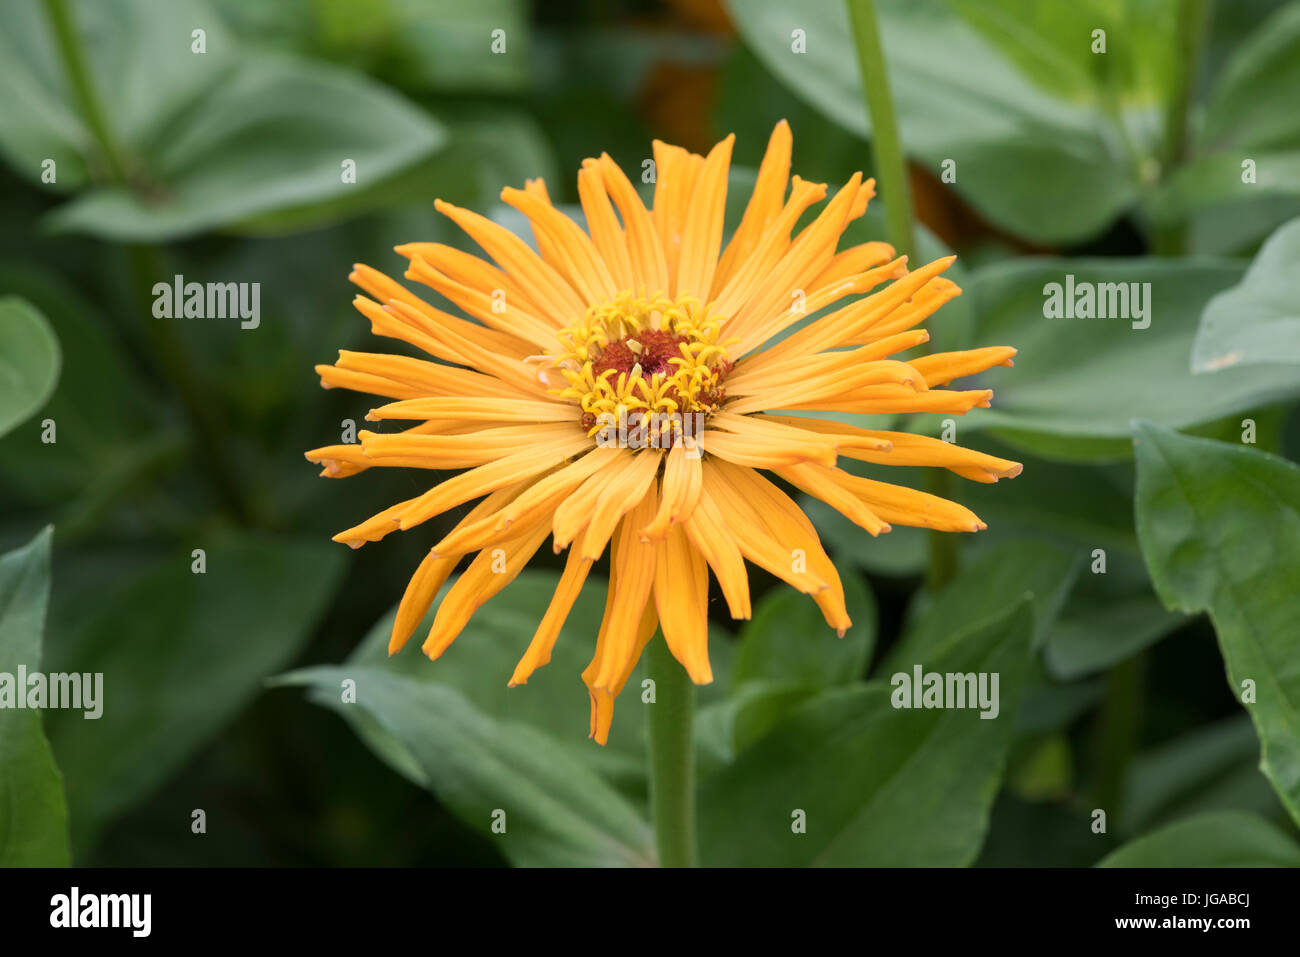 Zinnia hybrida. Zinnia 'Early wonder mixed' flowers - Stock Image